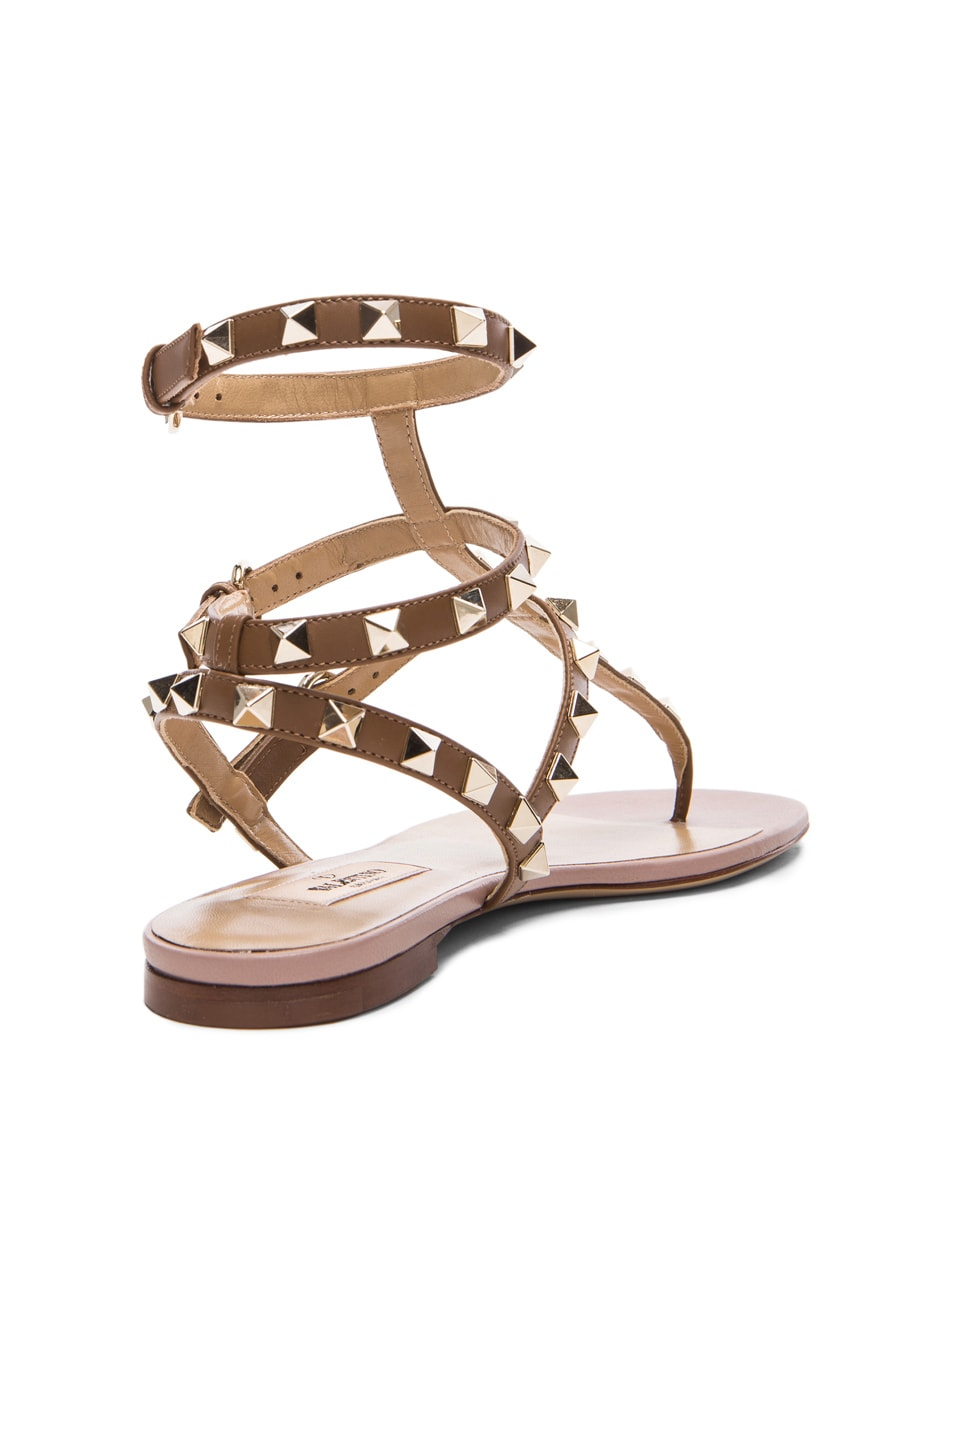 Image 3 of Valentino Rockstud Gladiator Leather Sandals T.05 in Deep Cuir